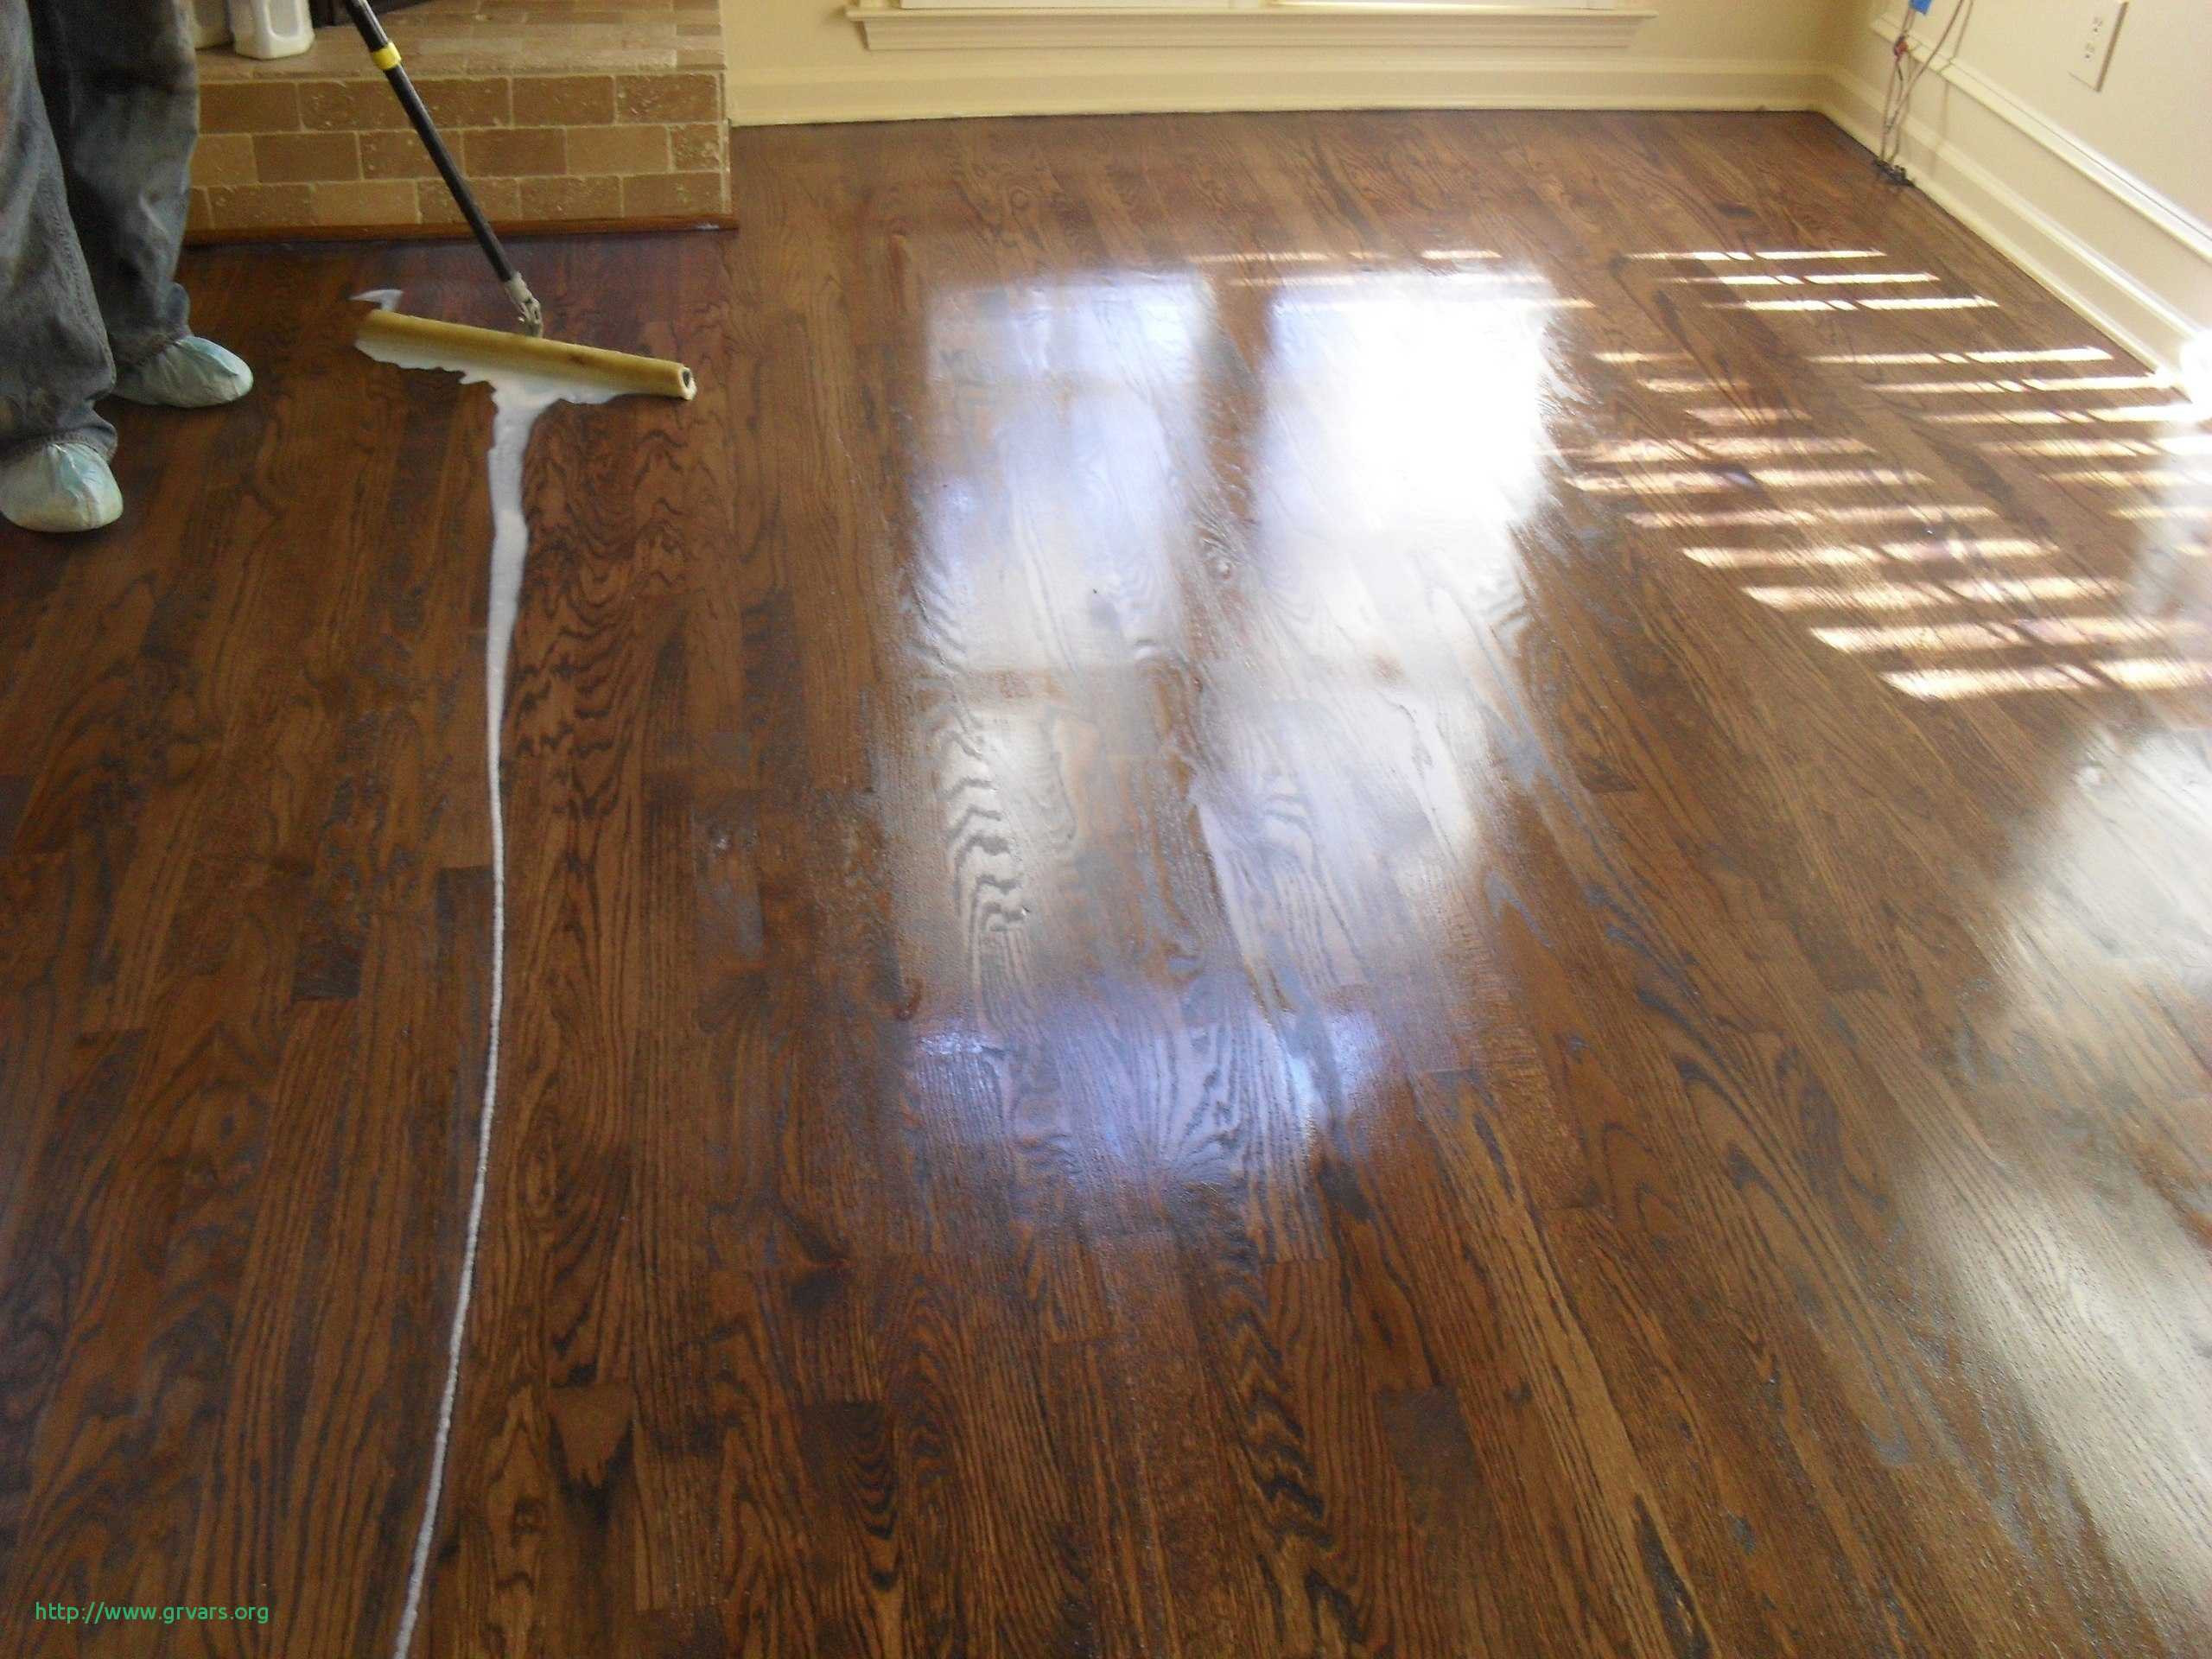 After Sanding Hardwood Floors Of Image Number 6563 From Post Restoring Old Hardwood Floors Will for Nouveau Hardwood Floors Yourself Ideas Restoring Old Will Inspirant Redo without Sanding Podemosleganes Lovely Refinishingod Pet